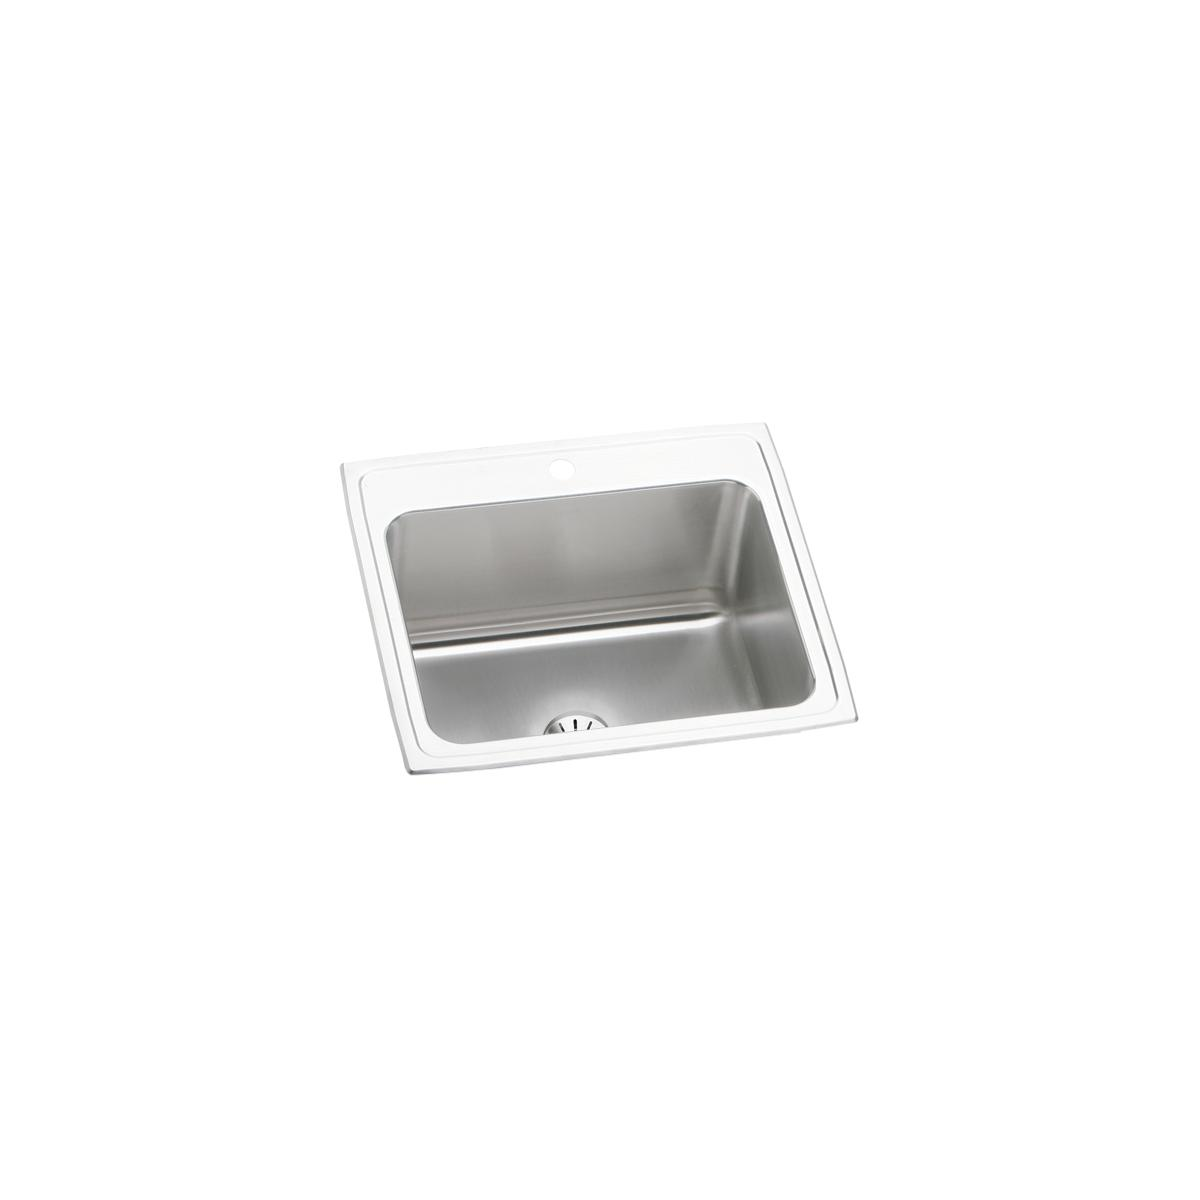 "Elkay Lustertone Classic Stainless Steel 25"" x 22"" x 10-3/8"", Single Bowl Drop-in Sink with Perfect Drain"